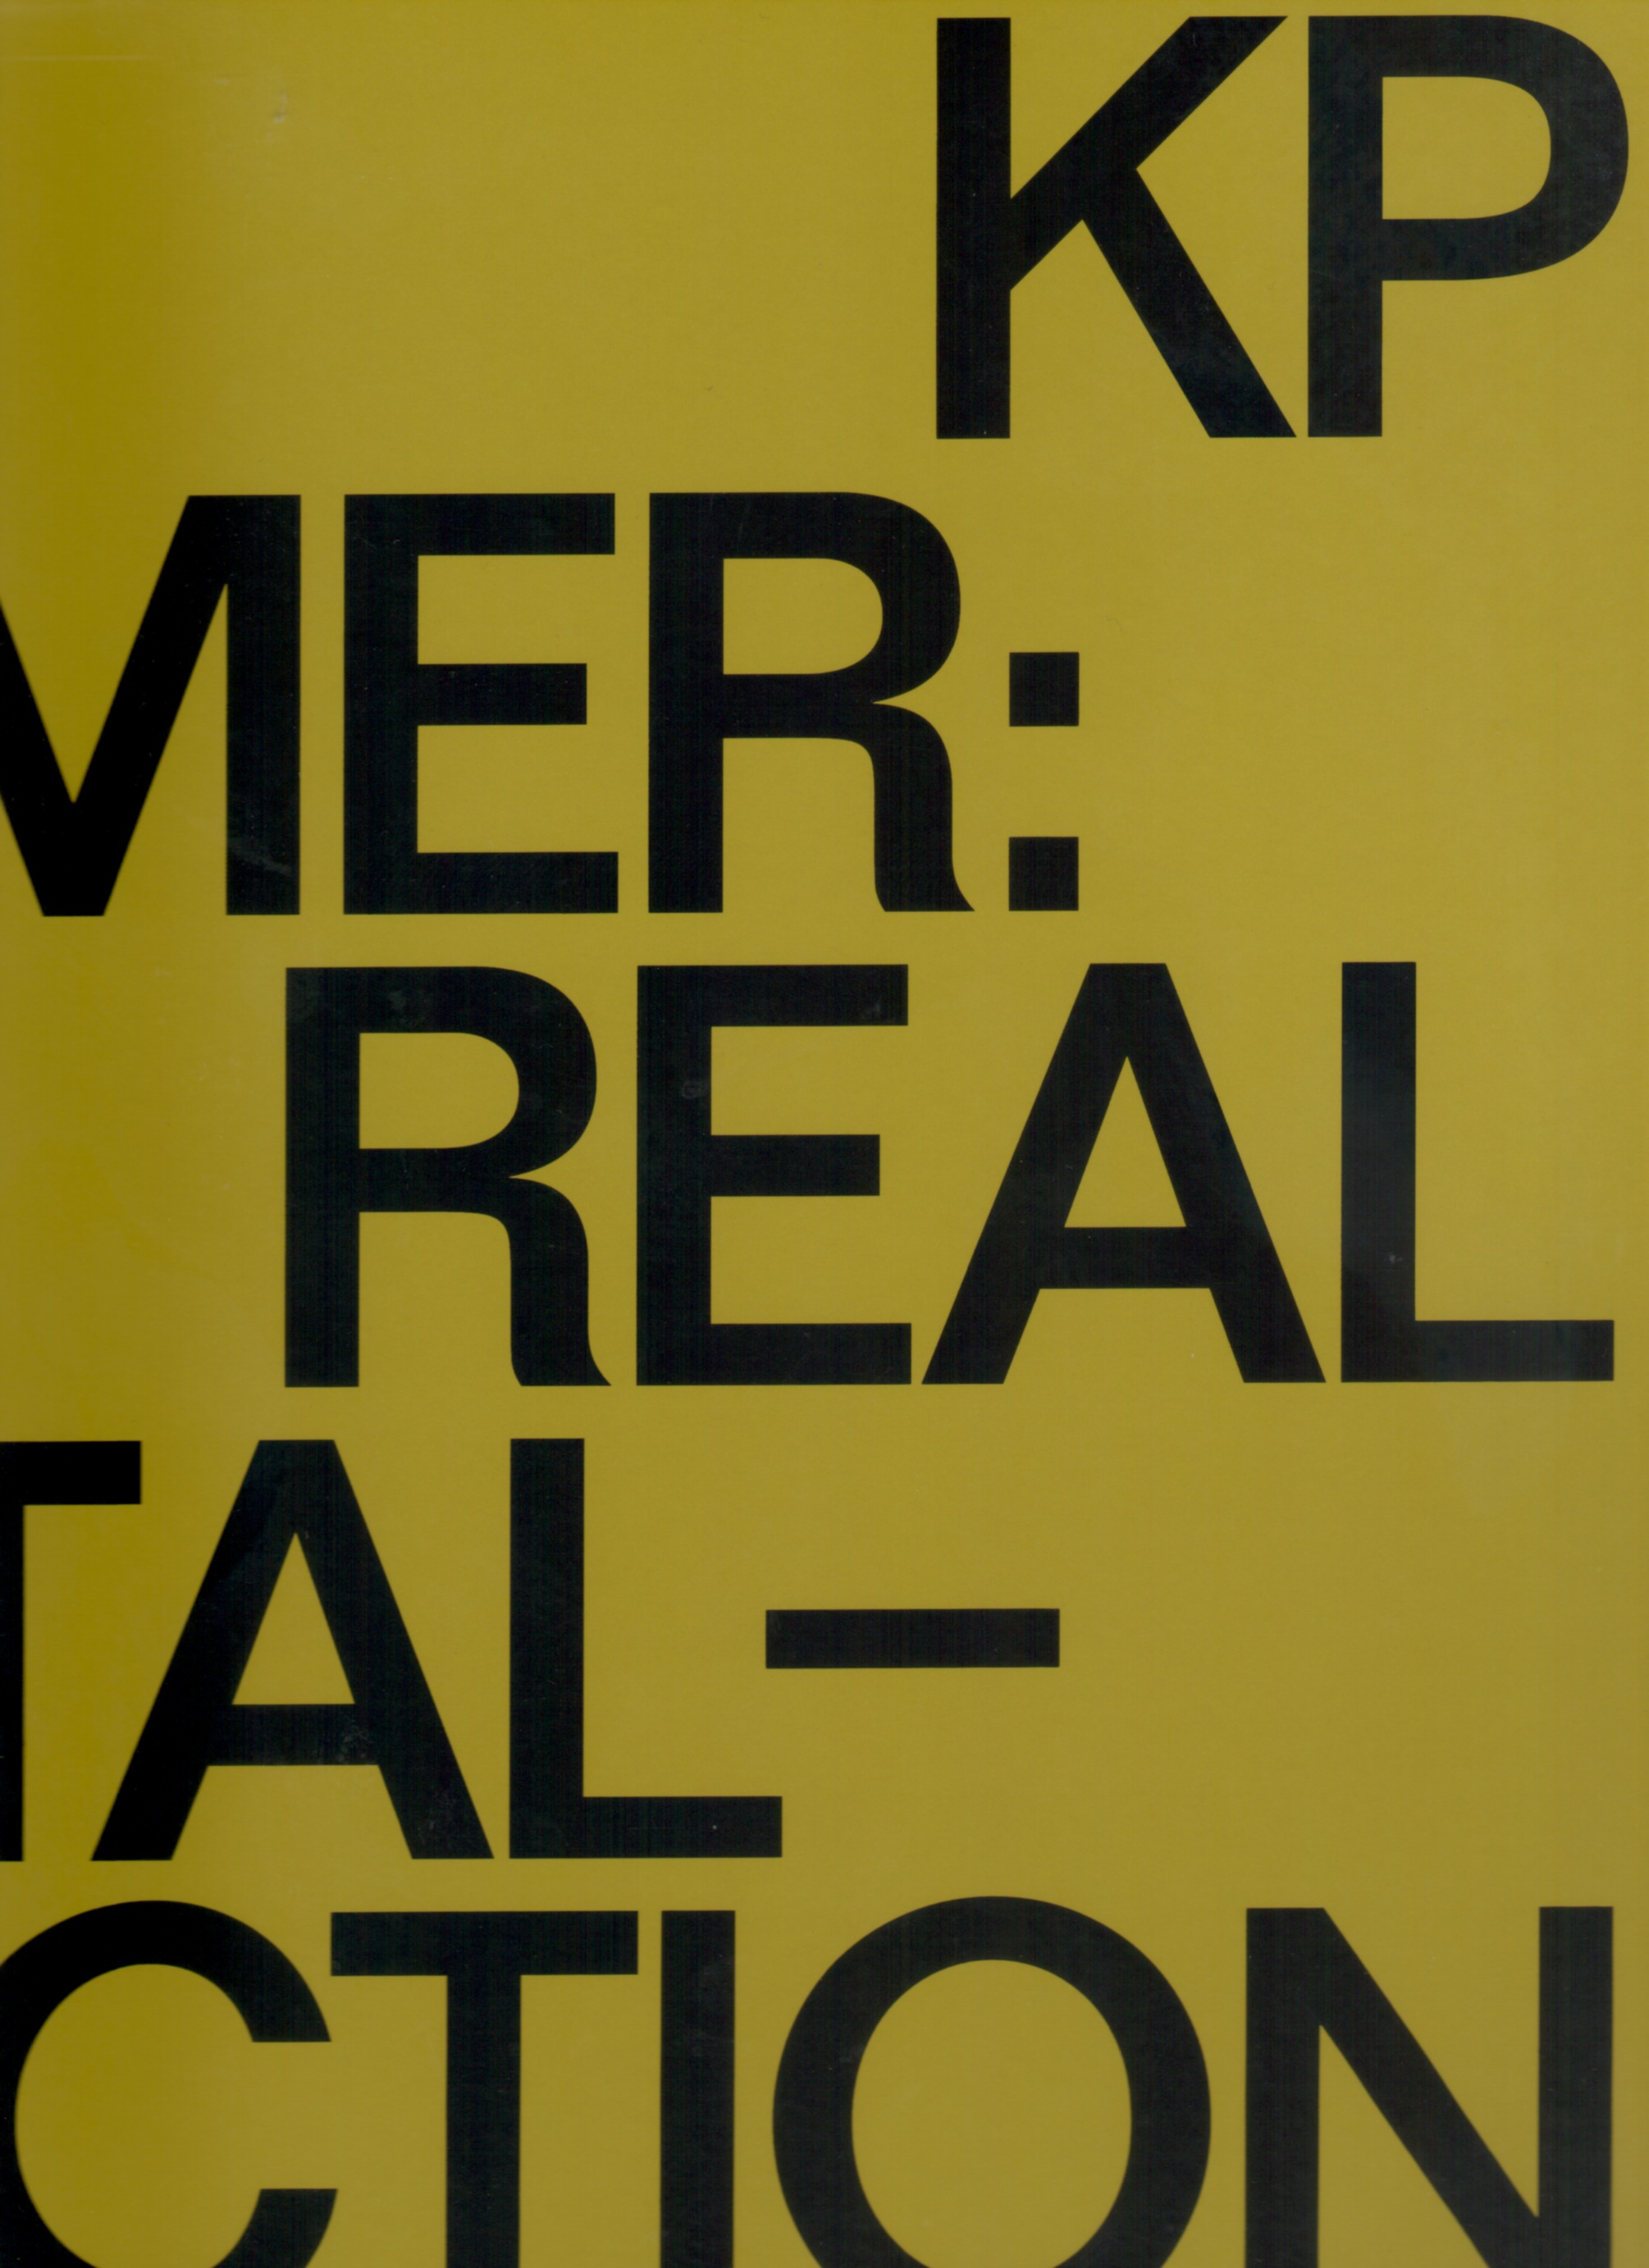 BREHMER, KP - KP BREHMER: REAL CAPITAL-PRODUCTION